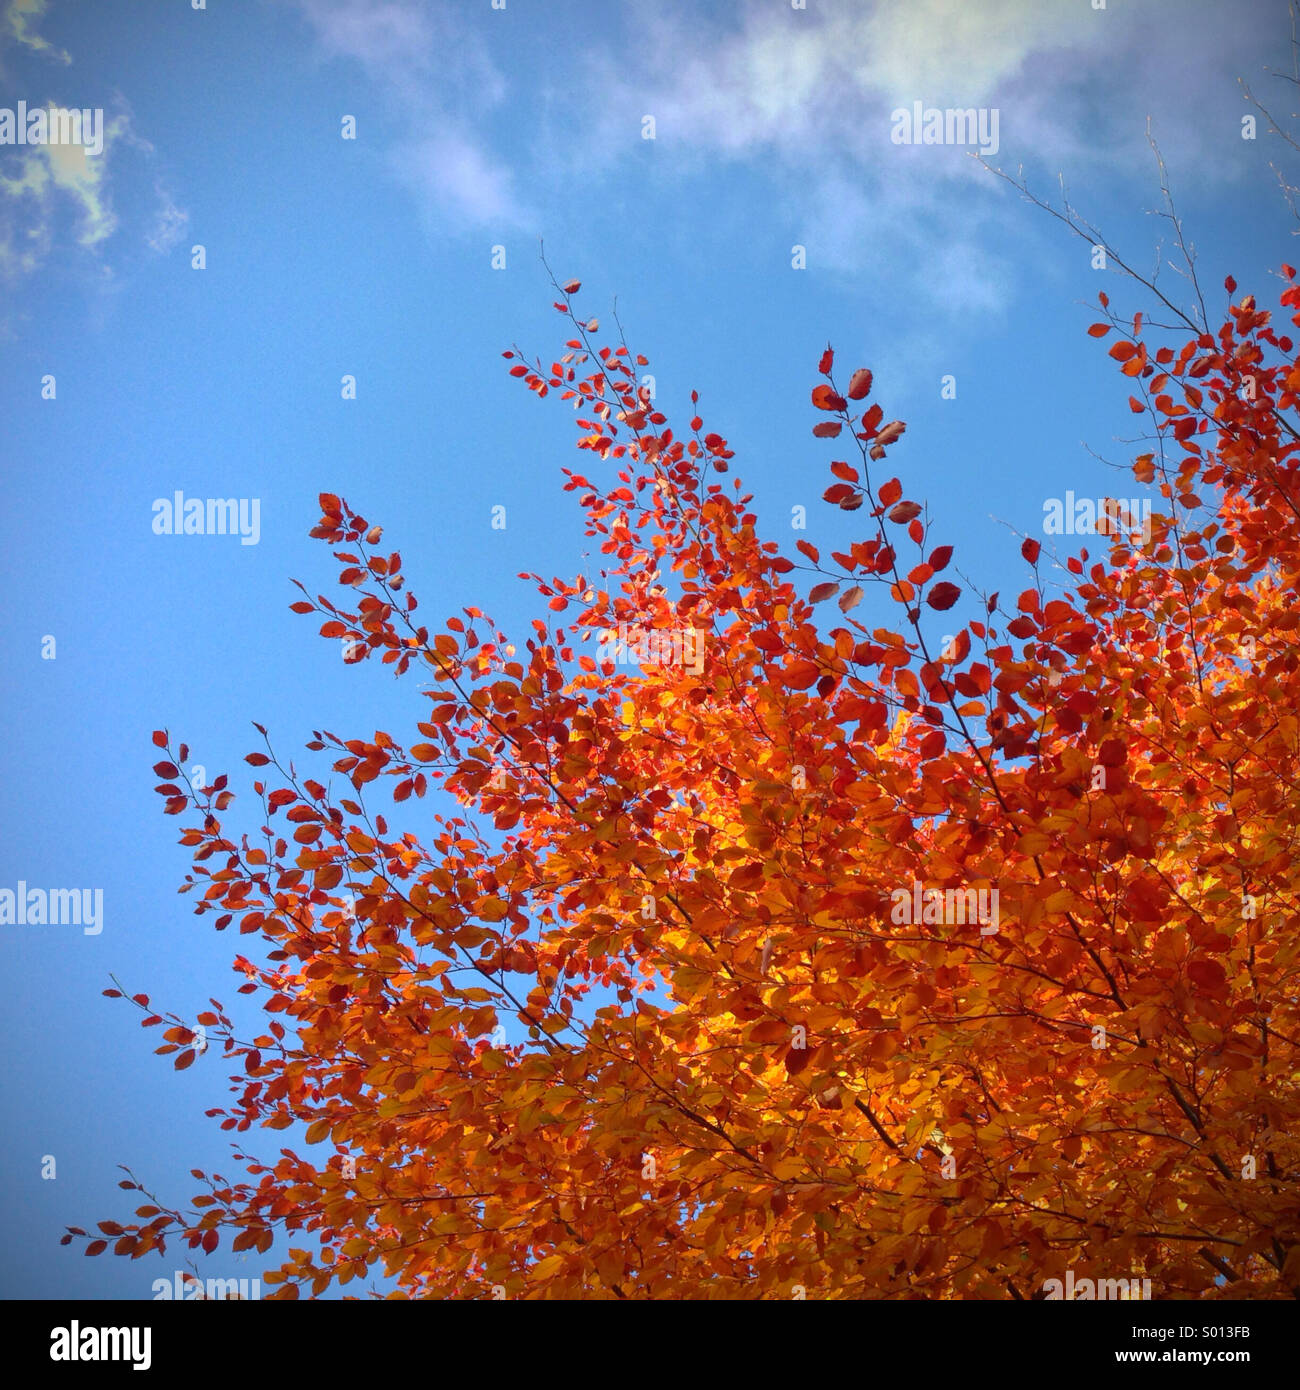 Fiery autumnal leaves on tree against a bright blue sky - Stock Image